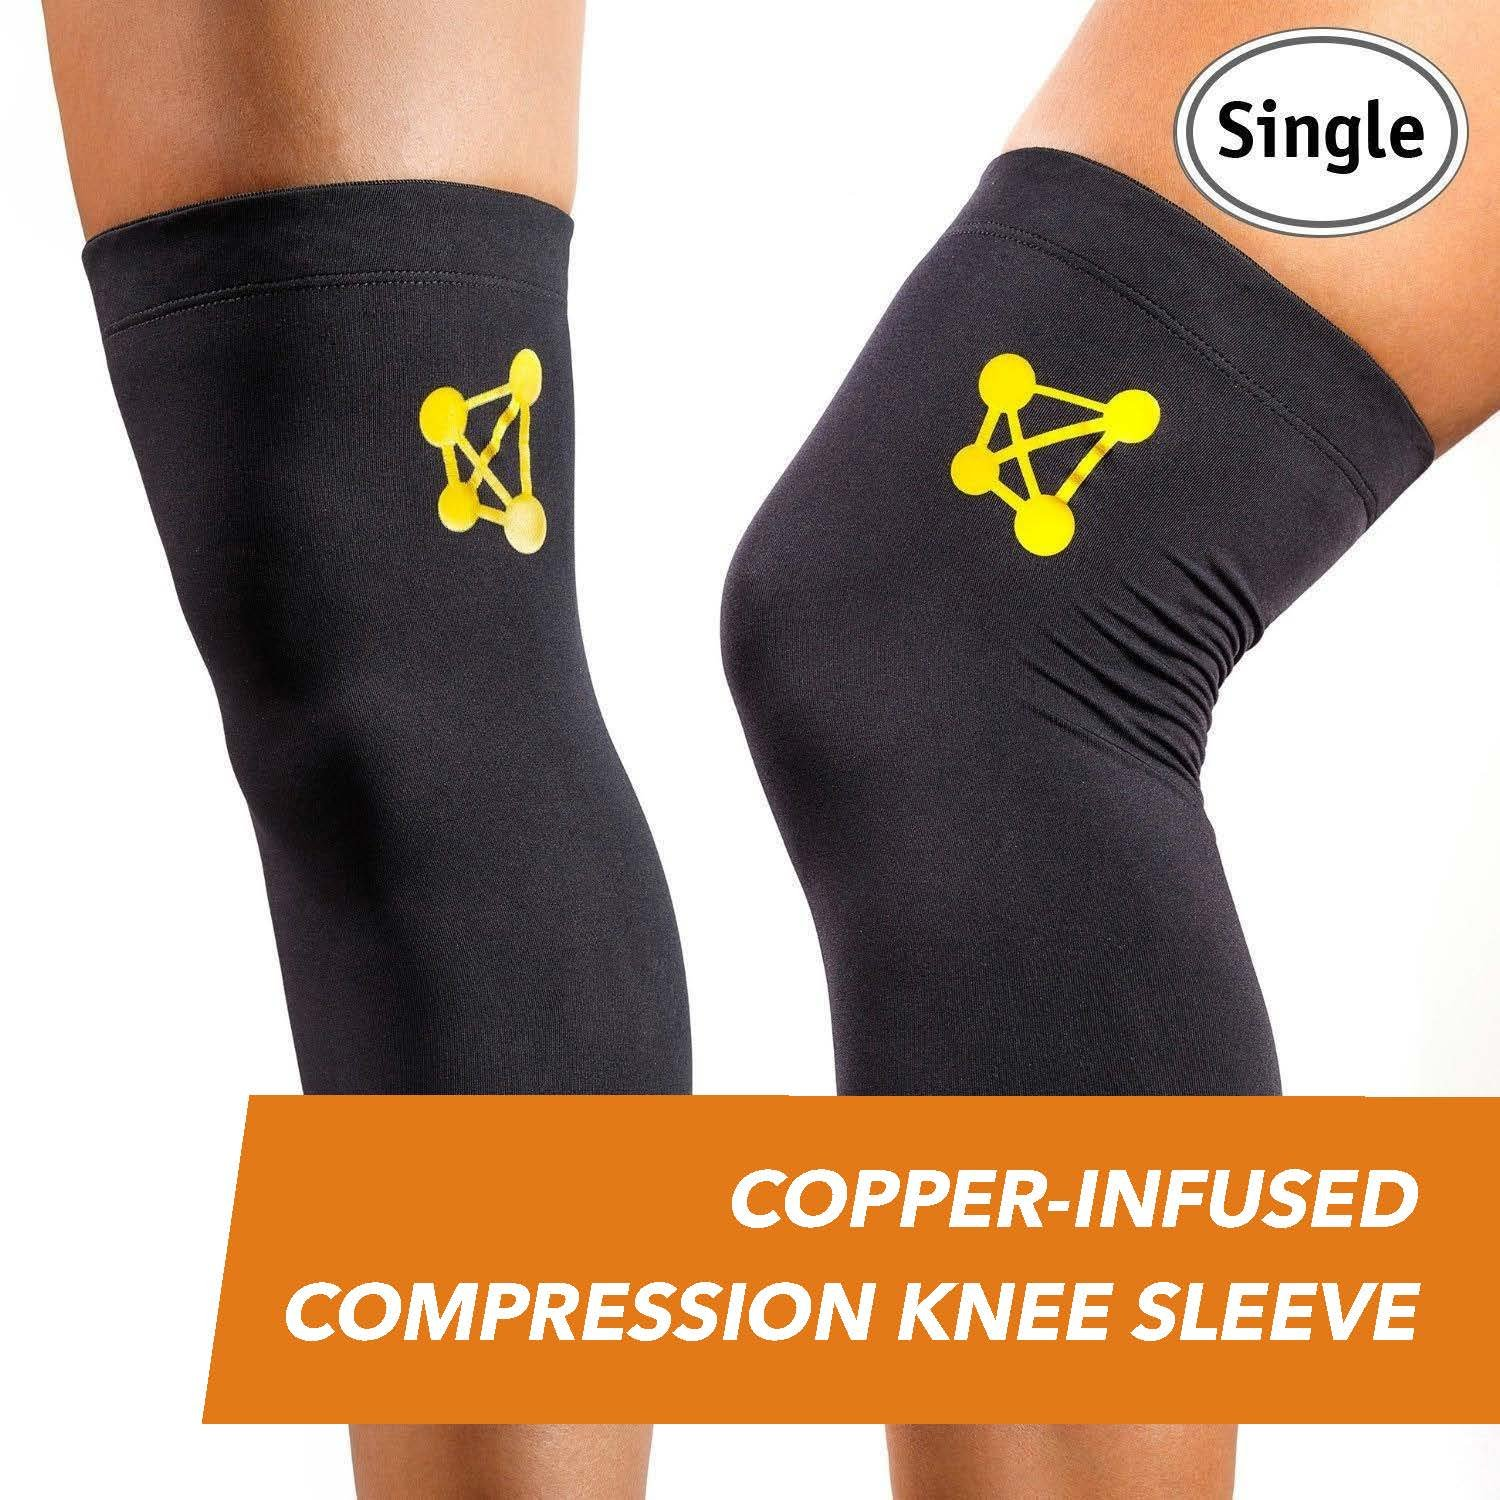 CopperJoint Copper Knee Brace, 1 Compression Fit Support - GUARANTEED Recovery Sleeve - Wear Anywhere by CopperJoint